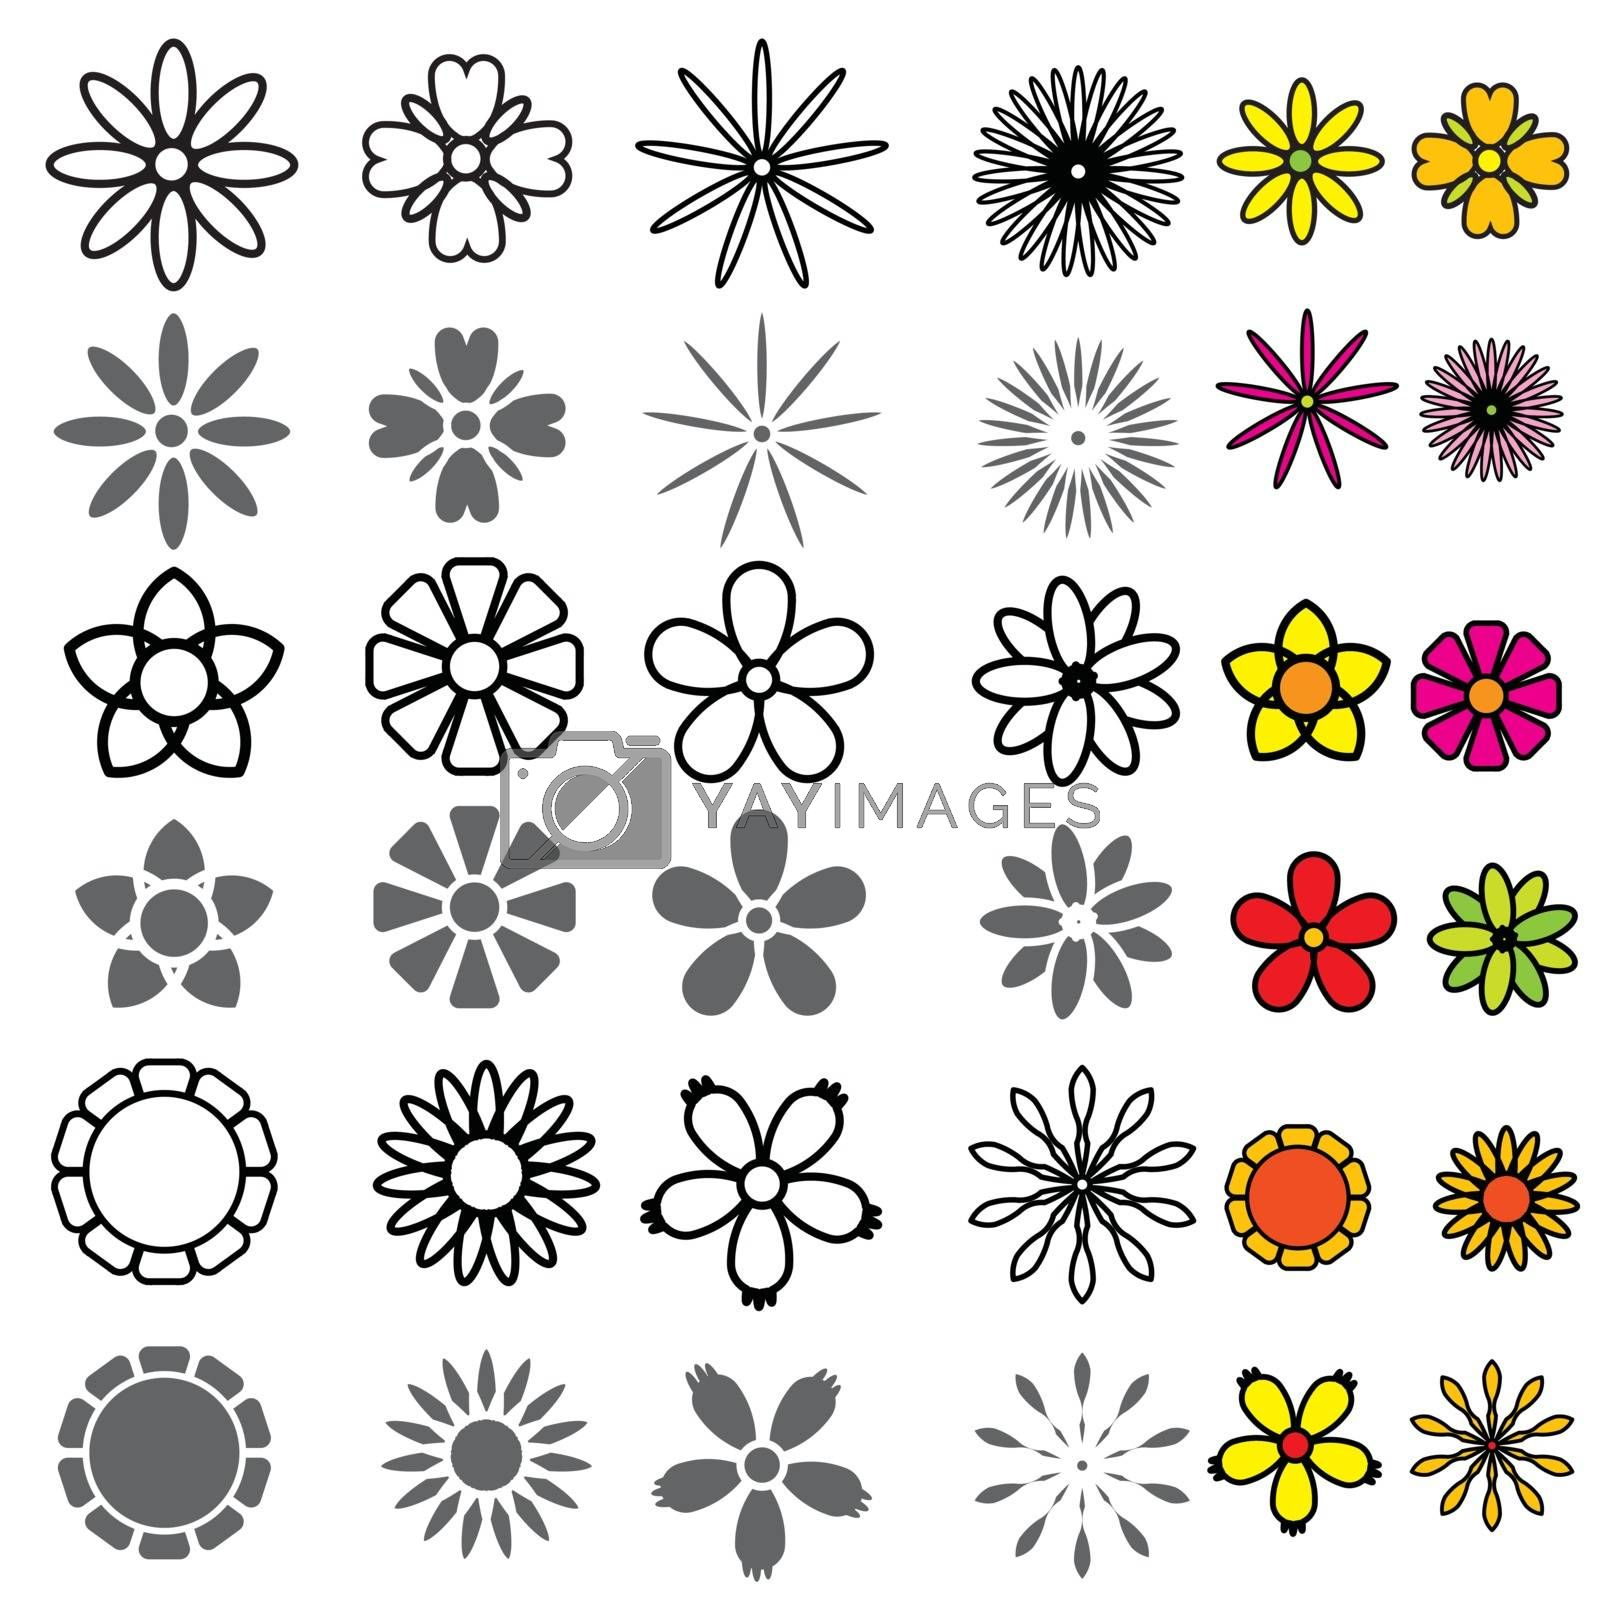 Royalty free image of Flower Icons Set vector by attaphong